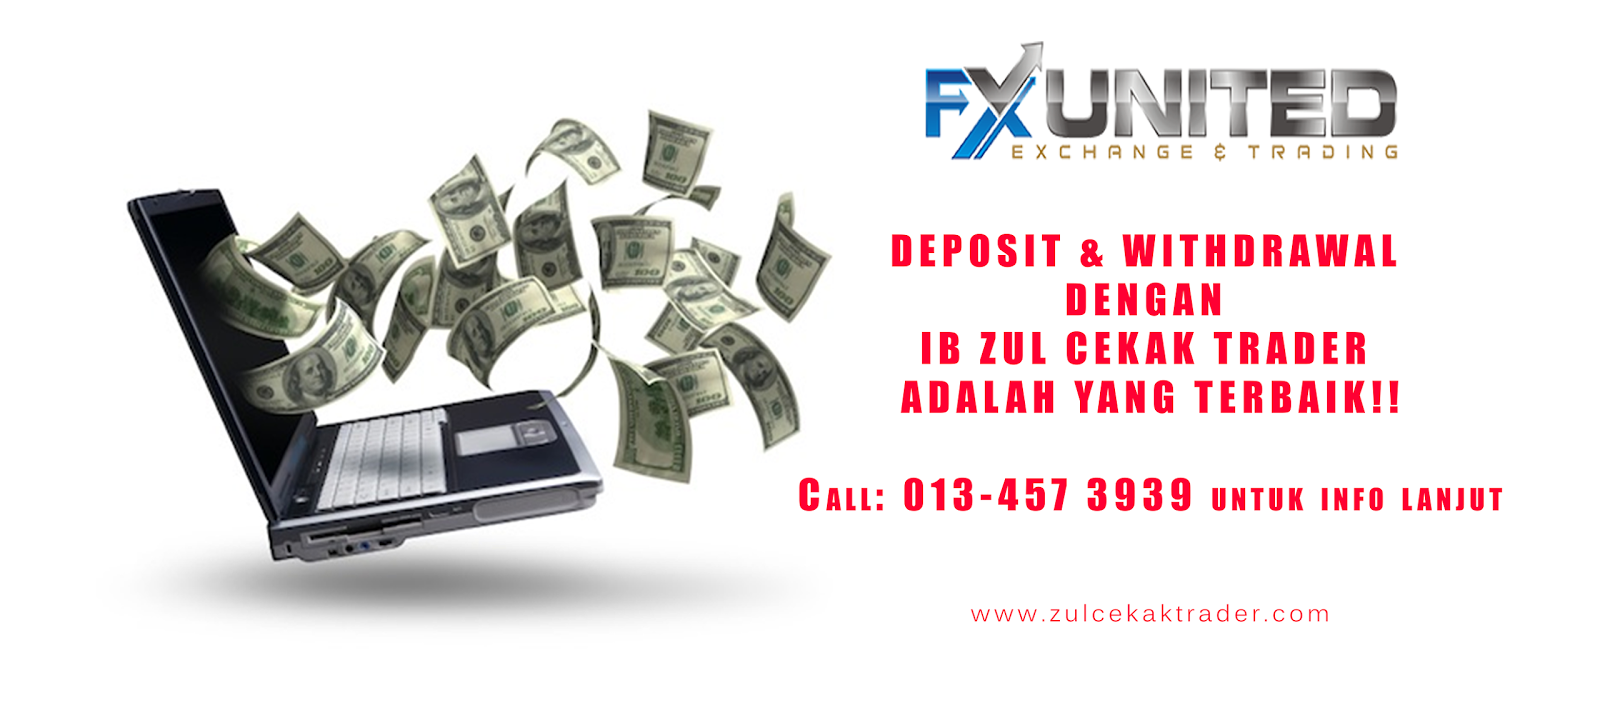 Forex classes in malaysia